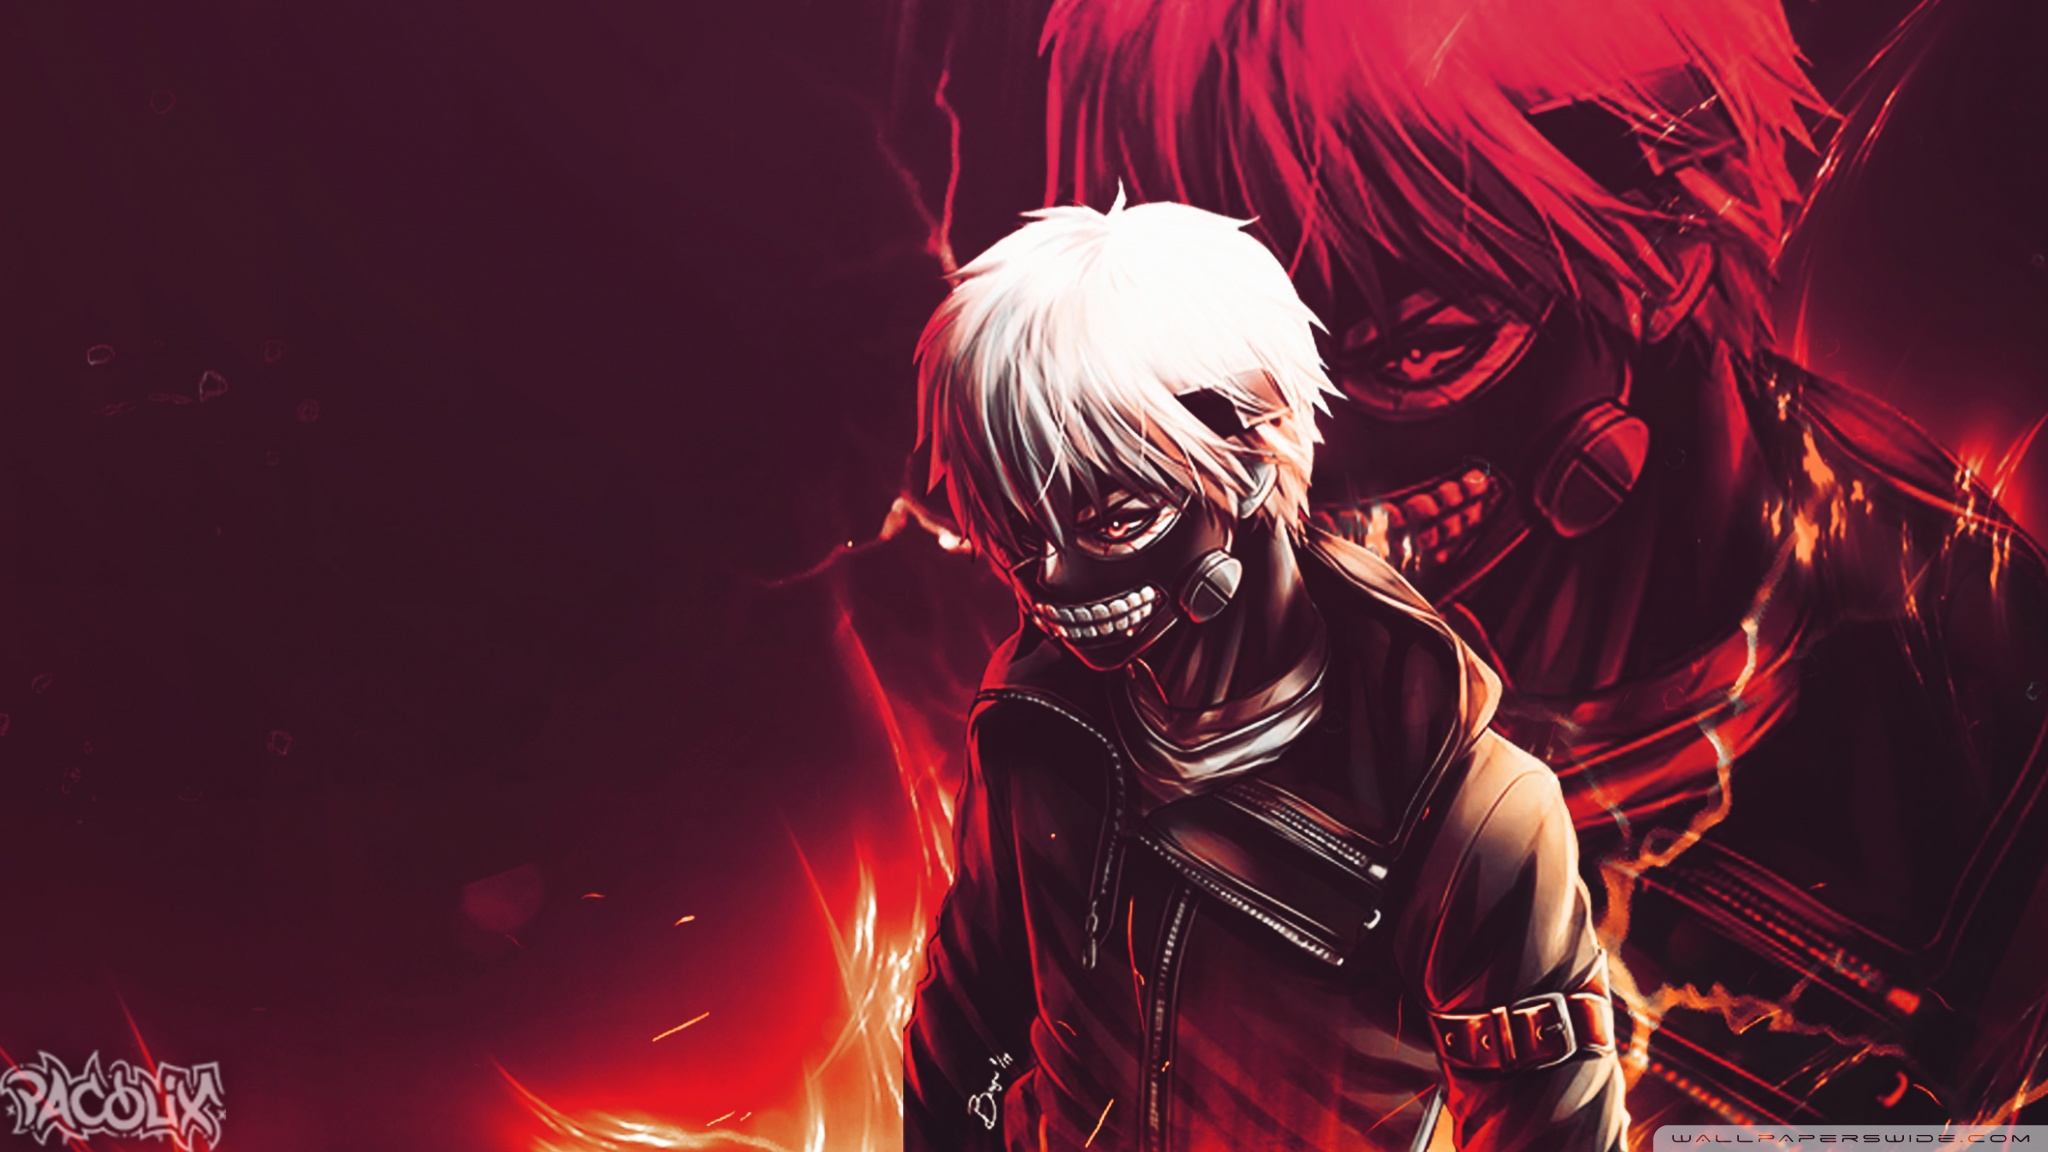 Tokyo Ghoul Hd Wallpaper Background Image 2048x1152 Id